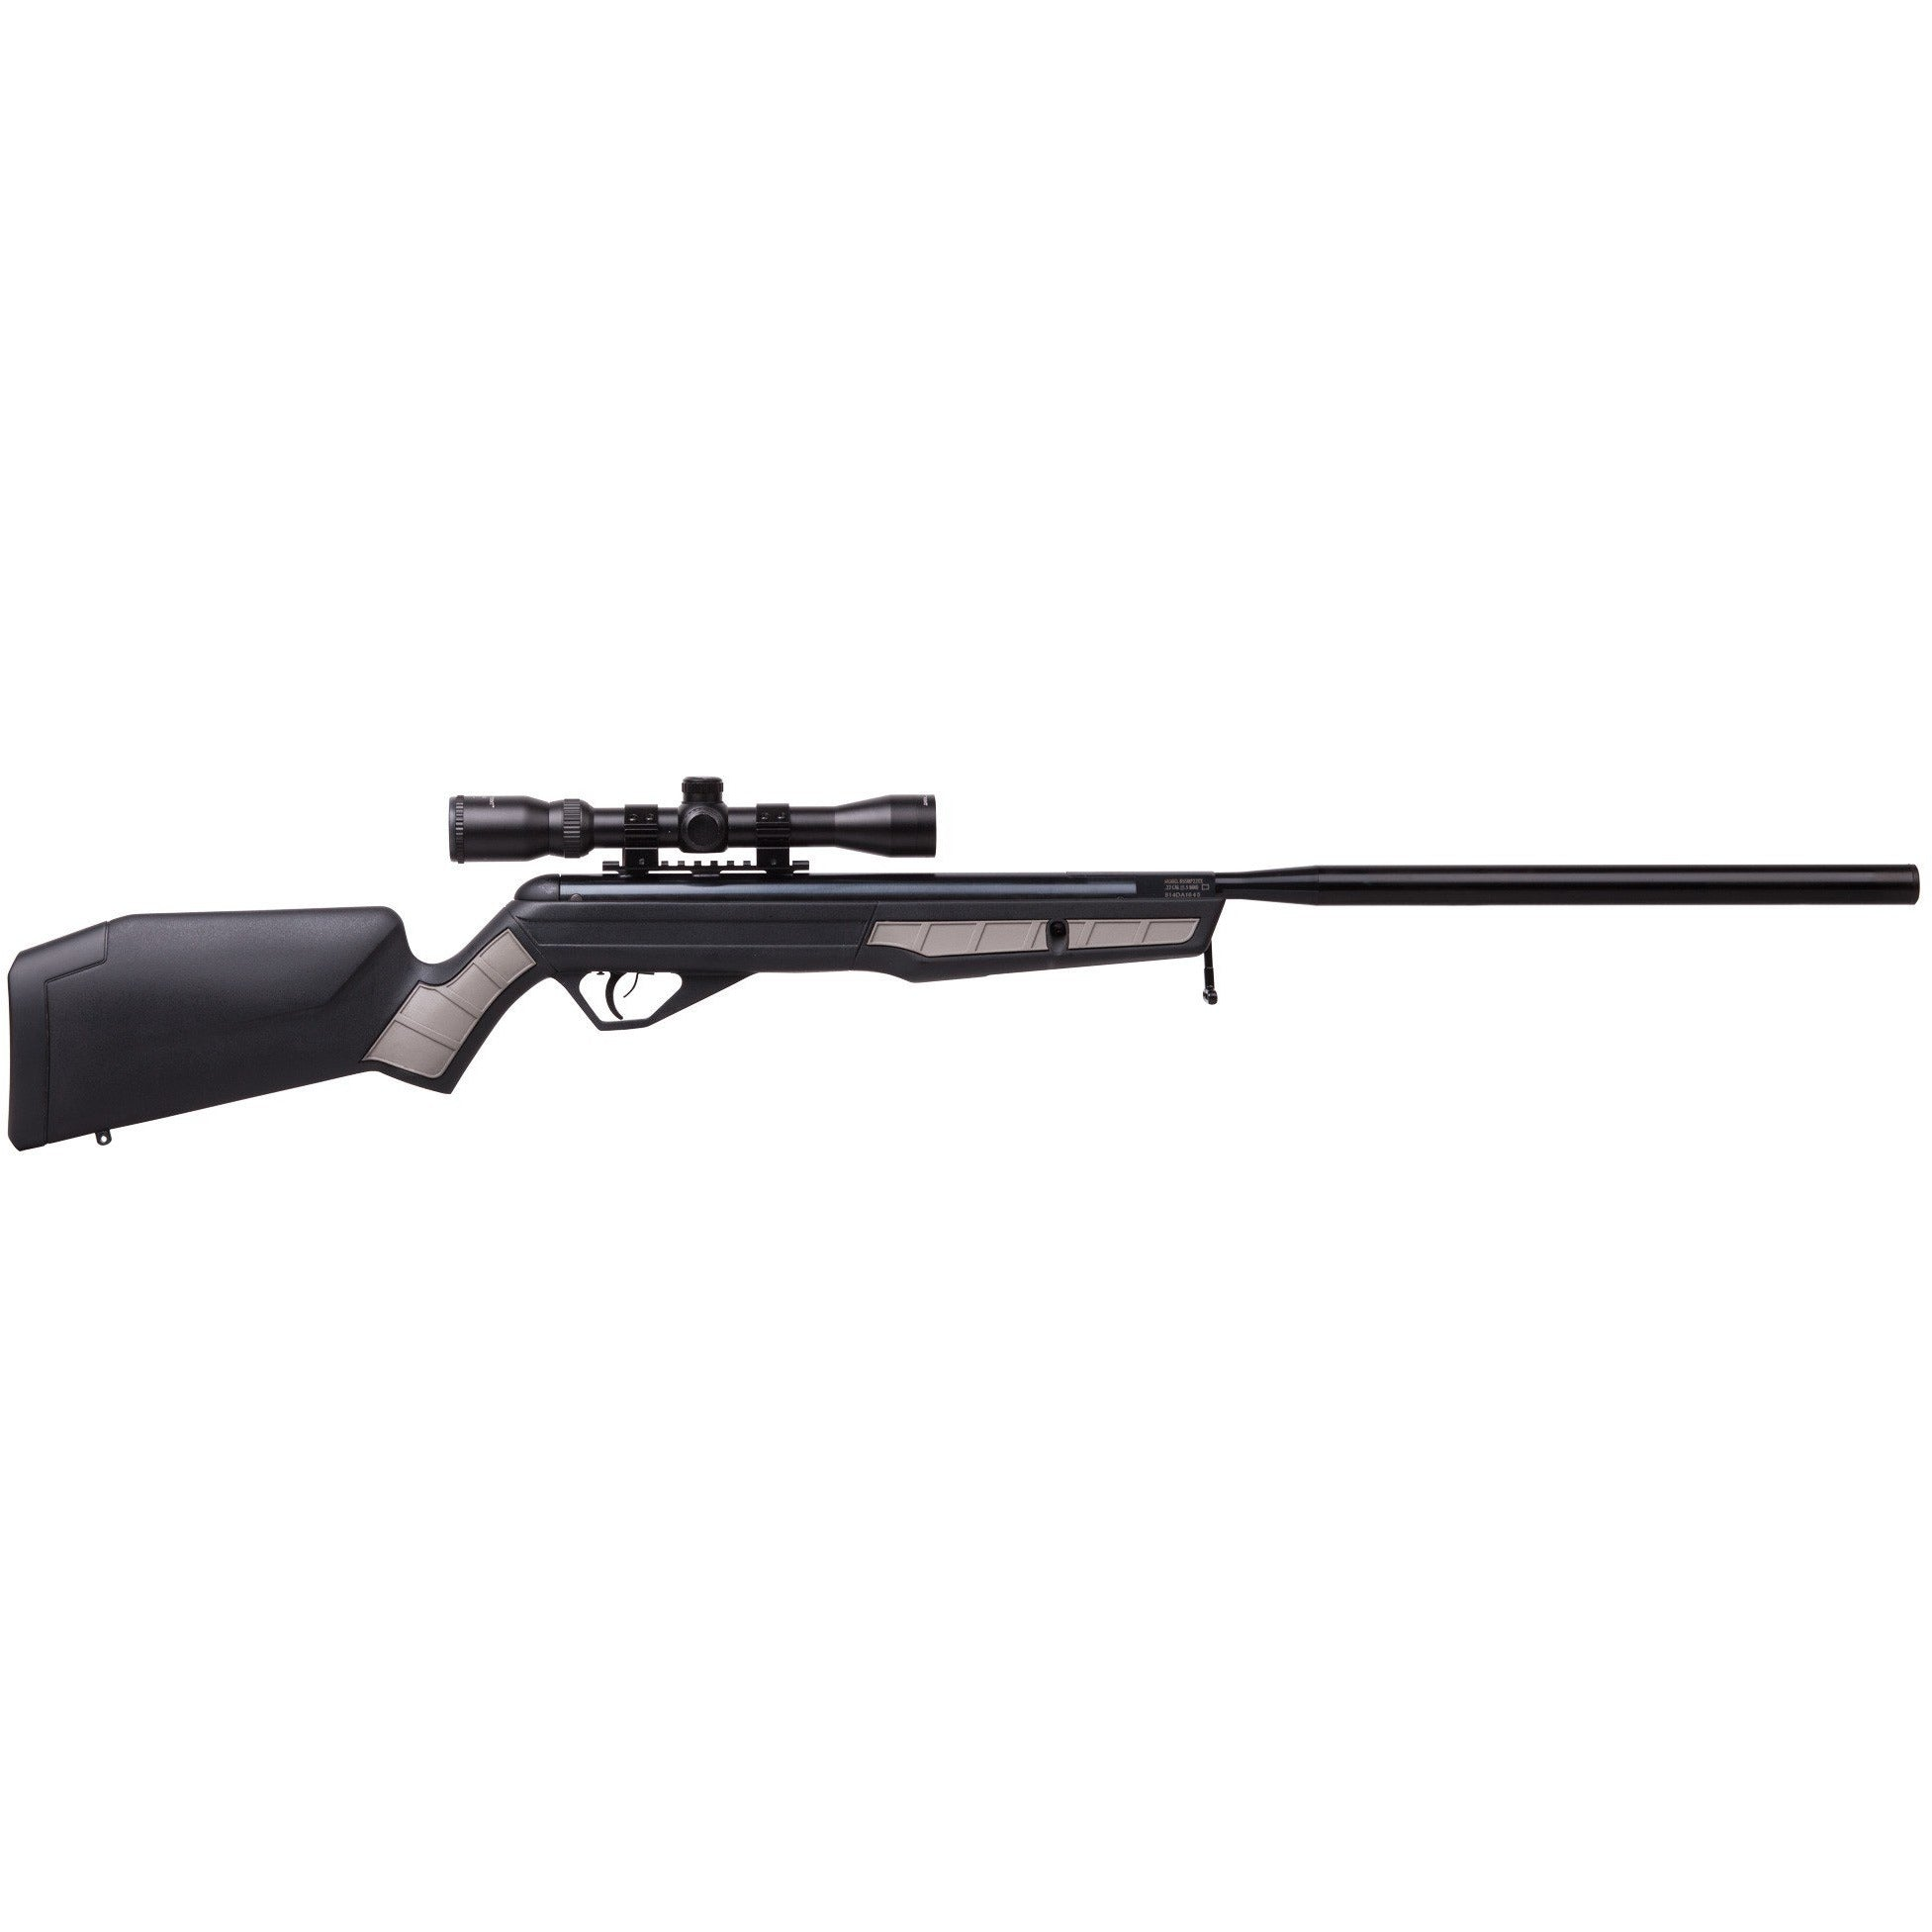 Crosman Benjamin Trail Steel Eagle Nitron Piston Break Barrel Rifle .22